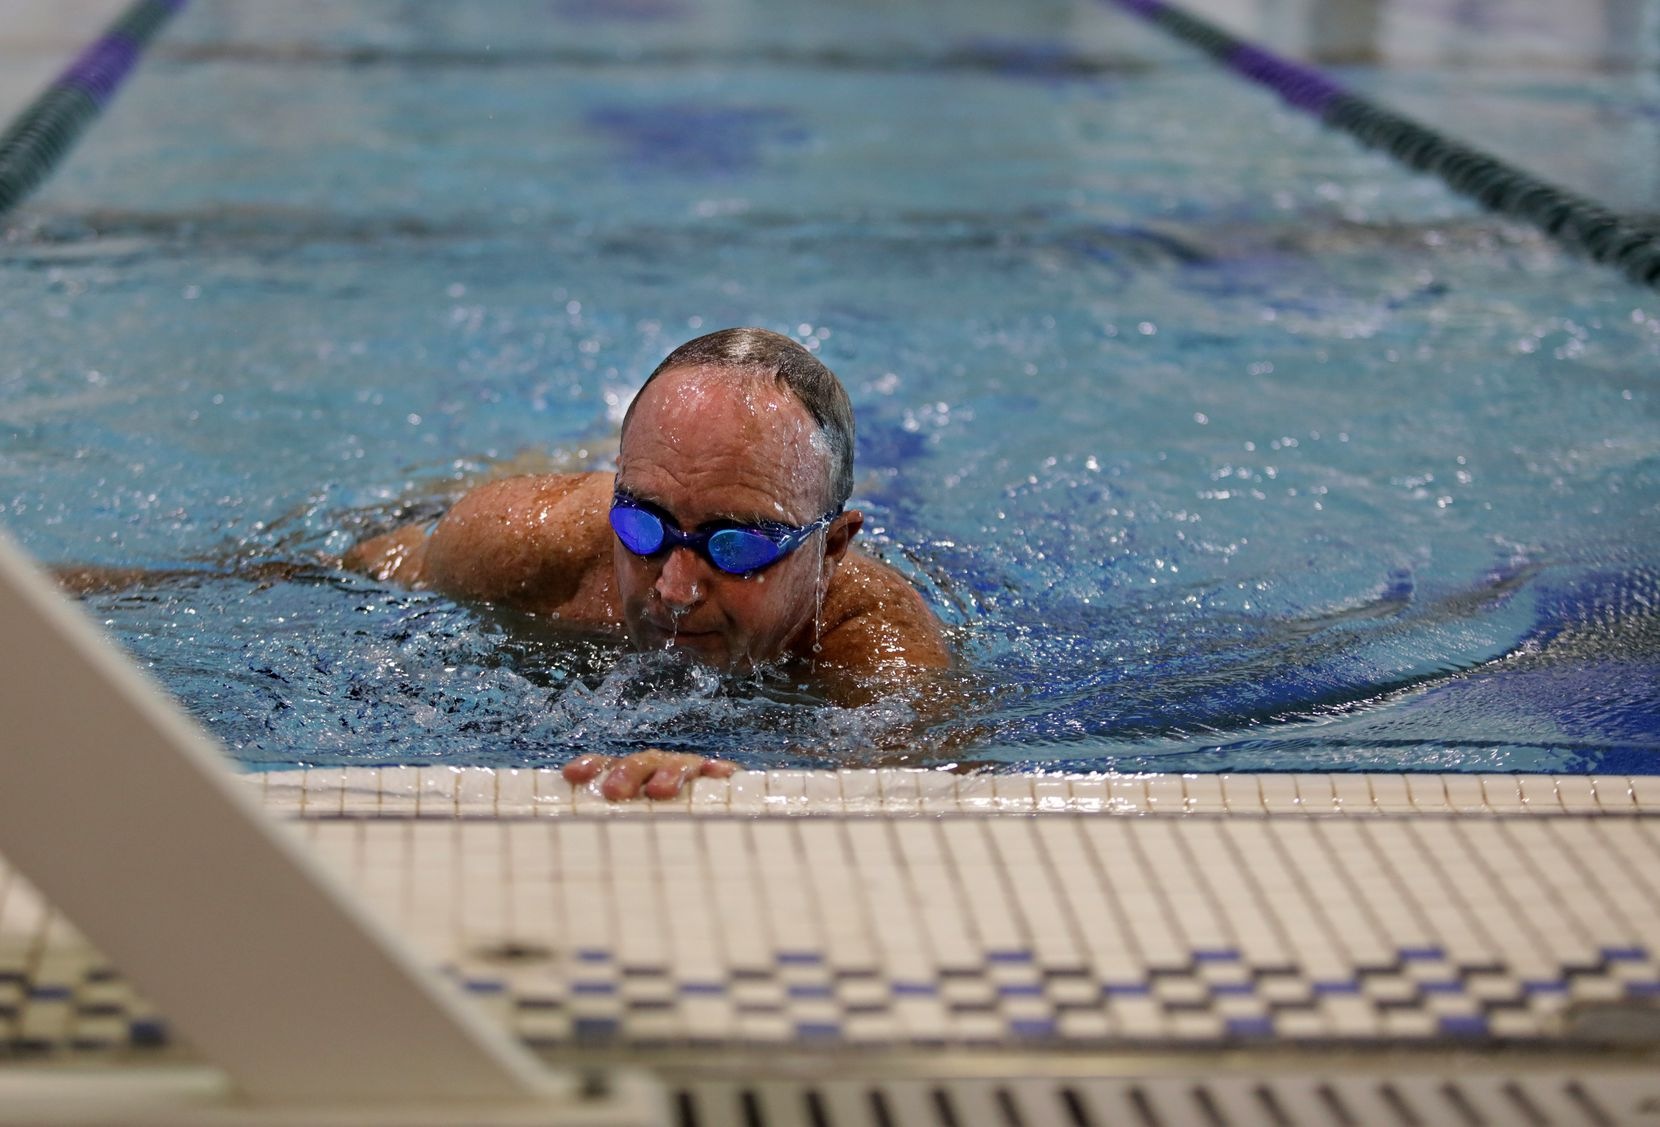 """Peter Goodspeed, 70, began swimming with a group, the Plano Wetcats, to improve his fitness. """"I found that on my own, it was difficult to maintain, but with a group, I kept it up,"""" he says."""